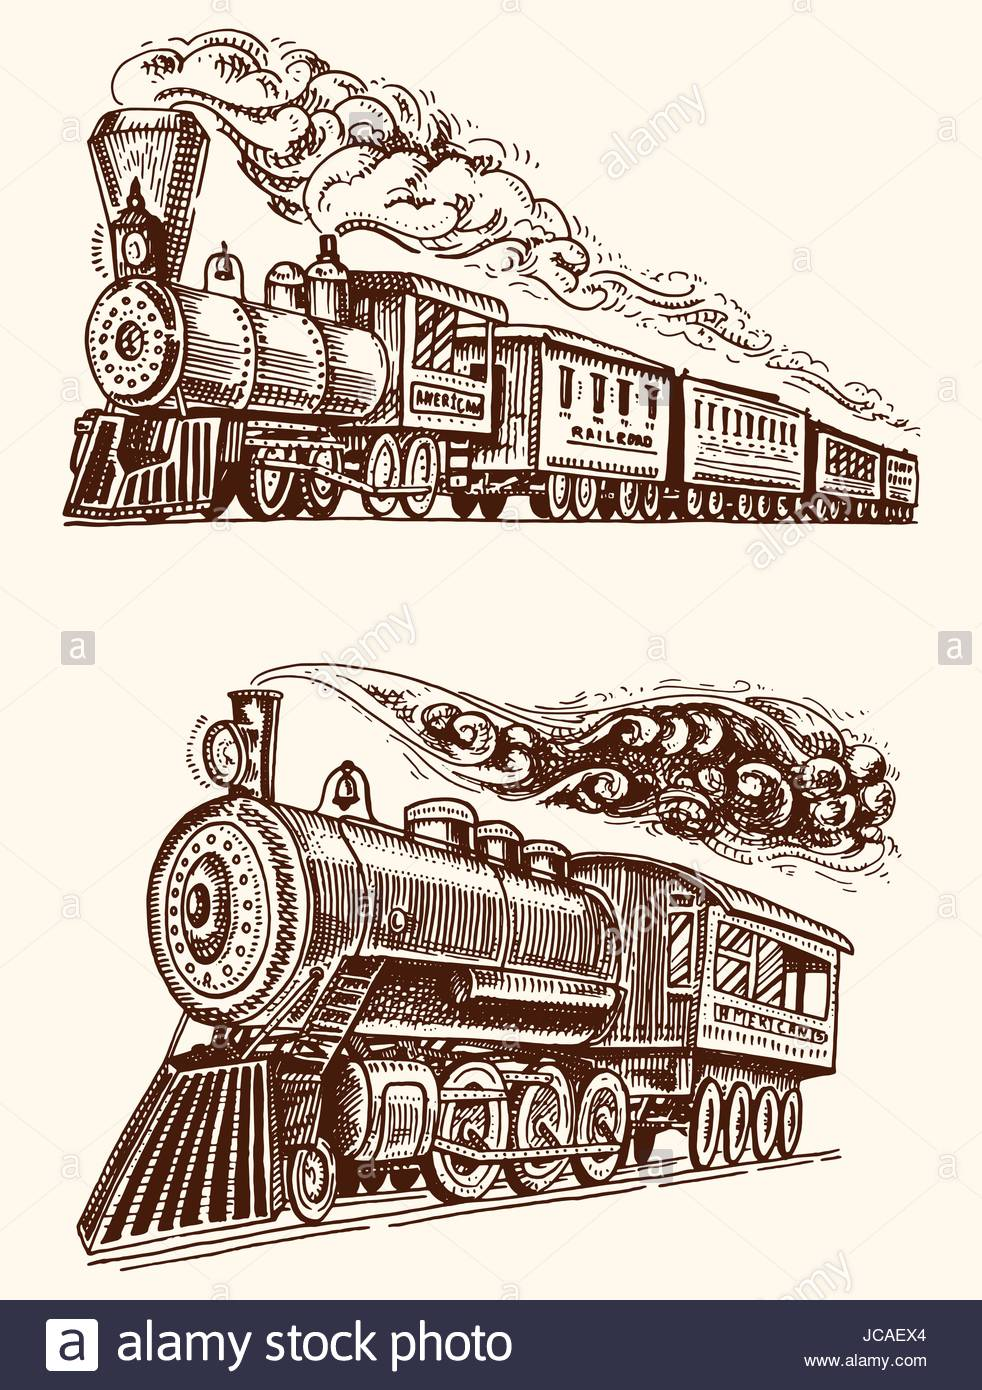 982x1390 Engraved Vintage, Hand Drawn, Old Locomotive Or Train With Steam